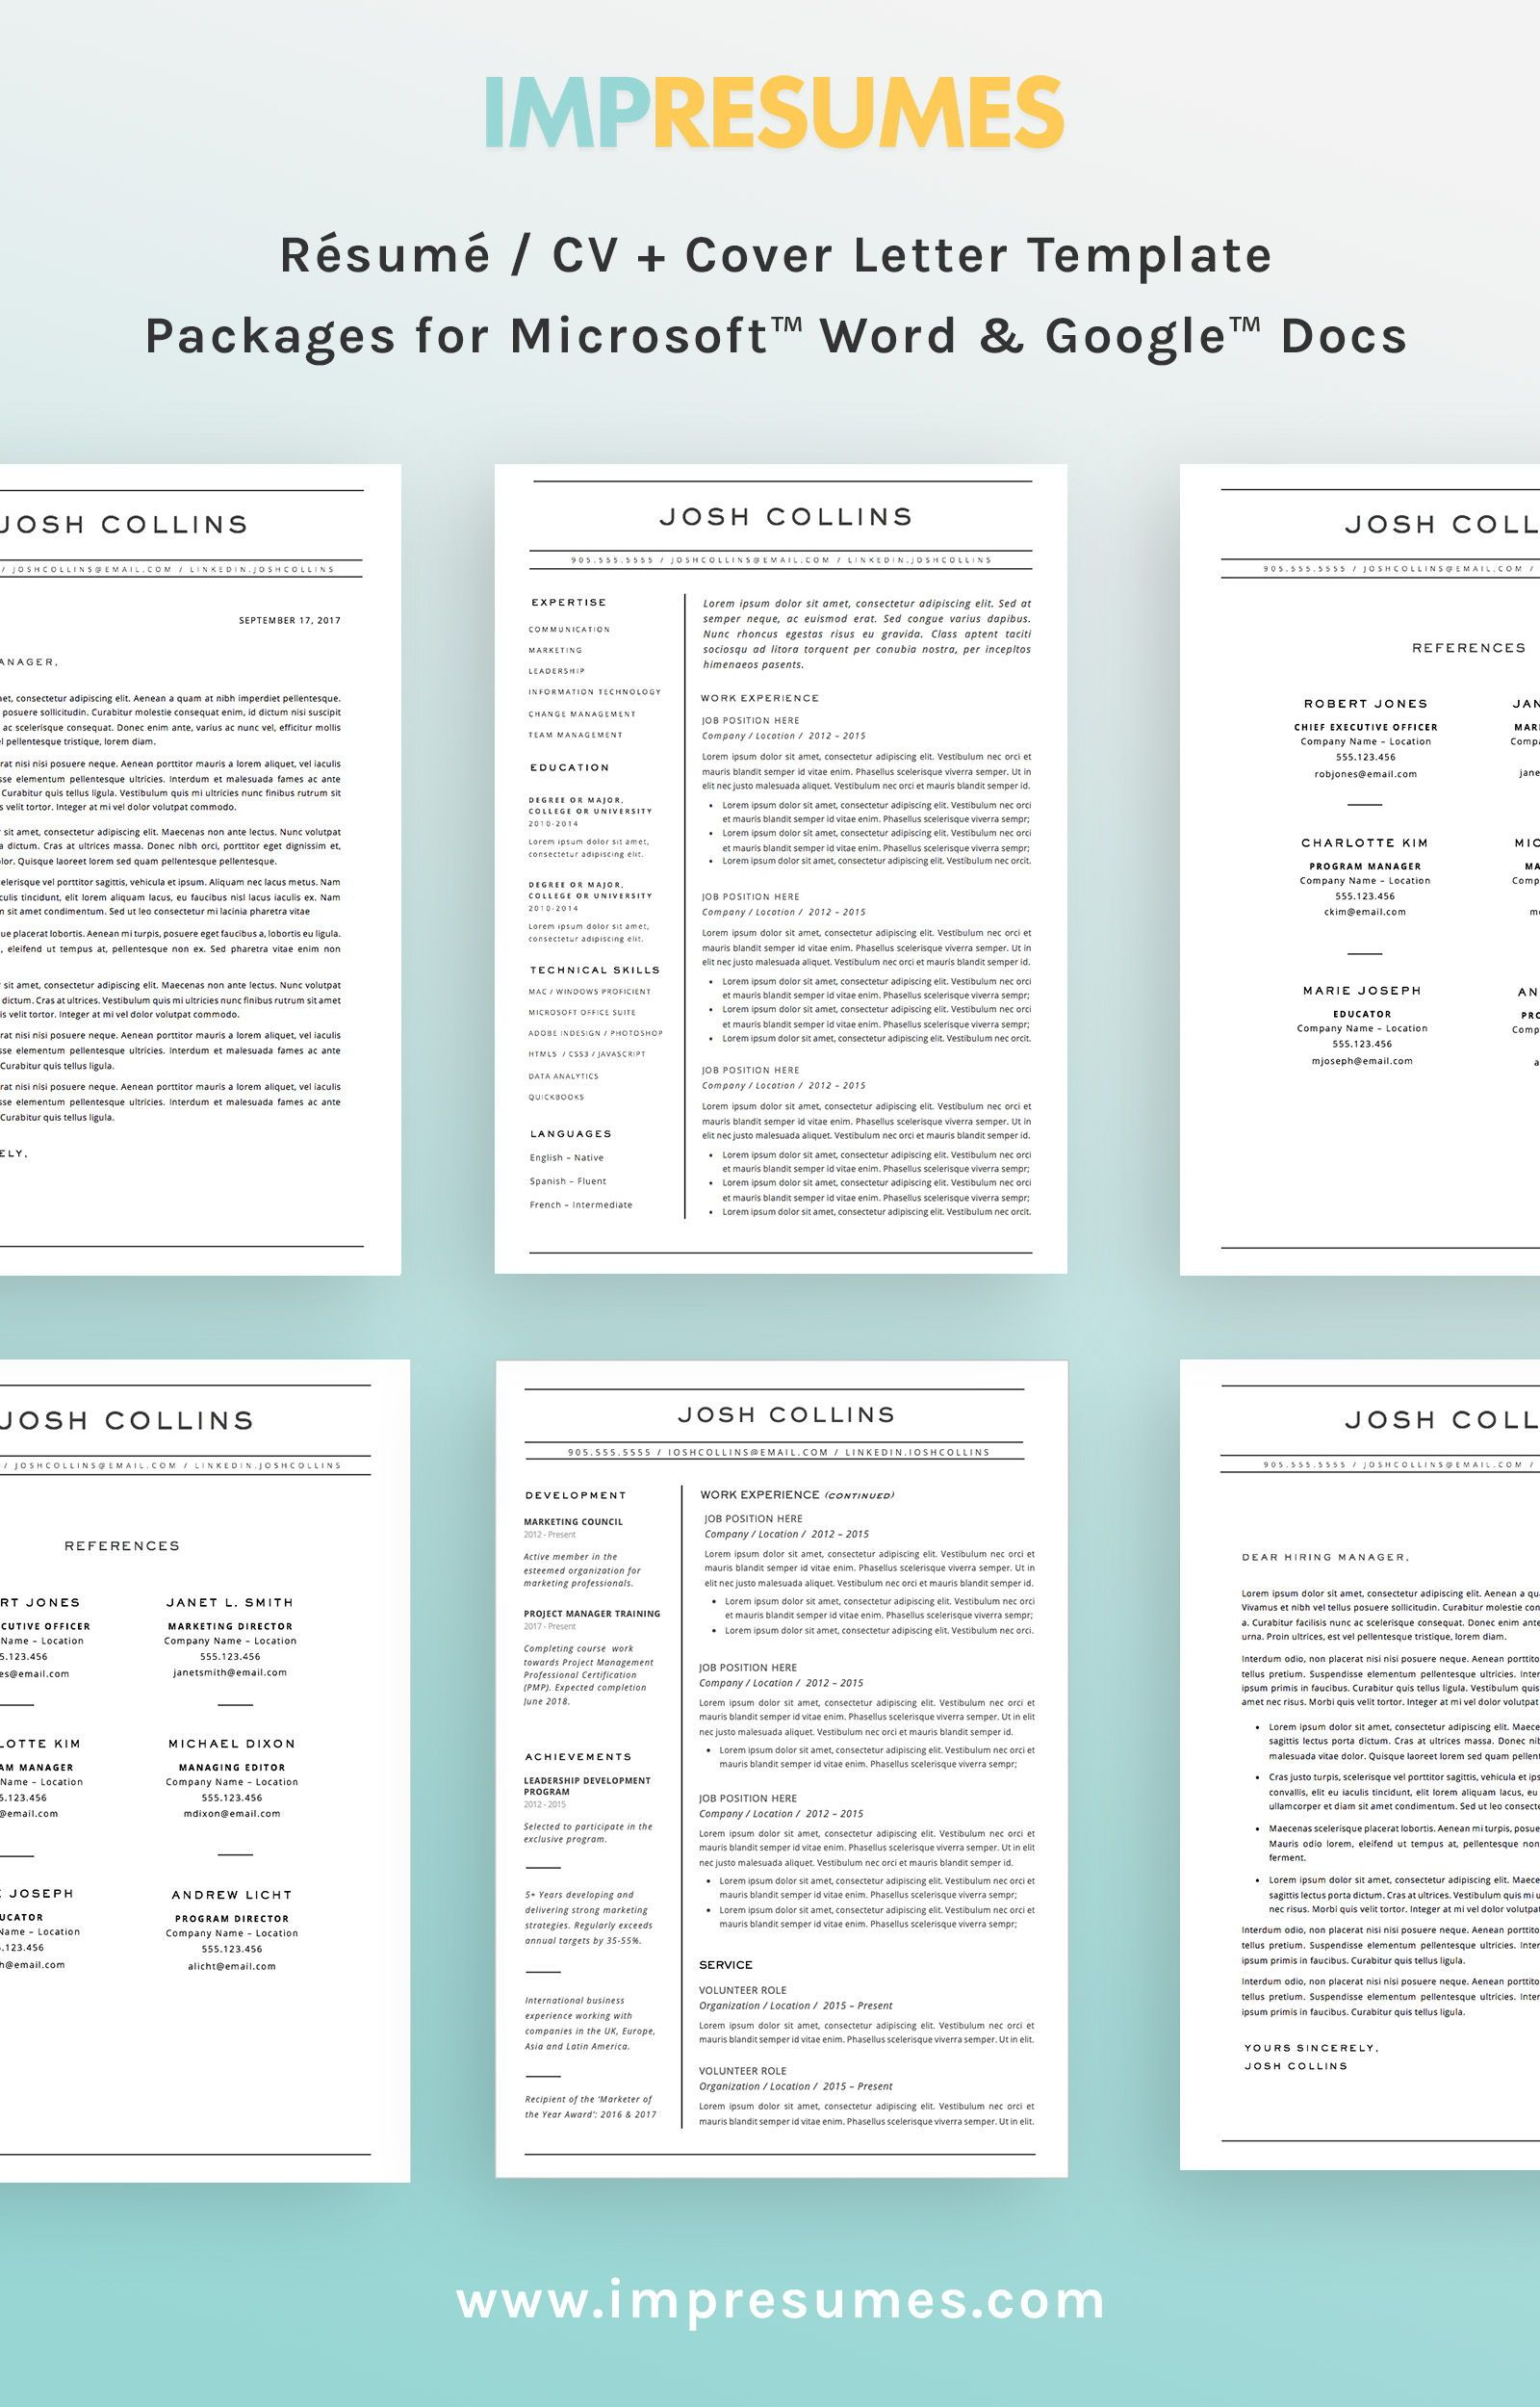 u0026 39 the collins u0026 39  resume    cv template package for microsoft